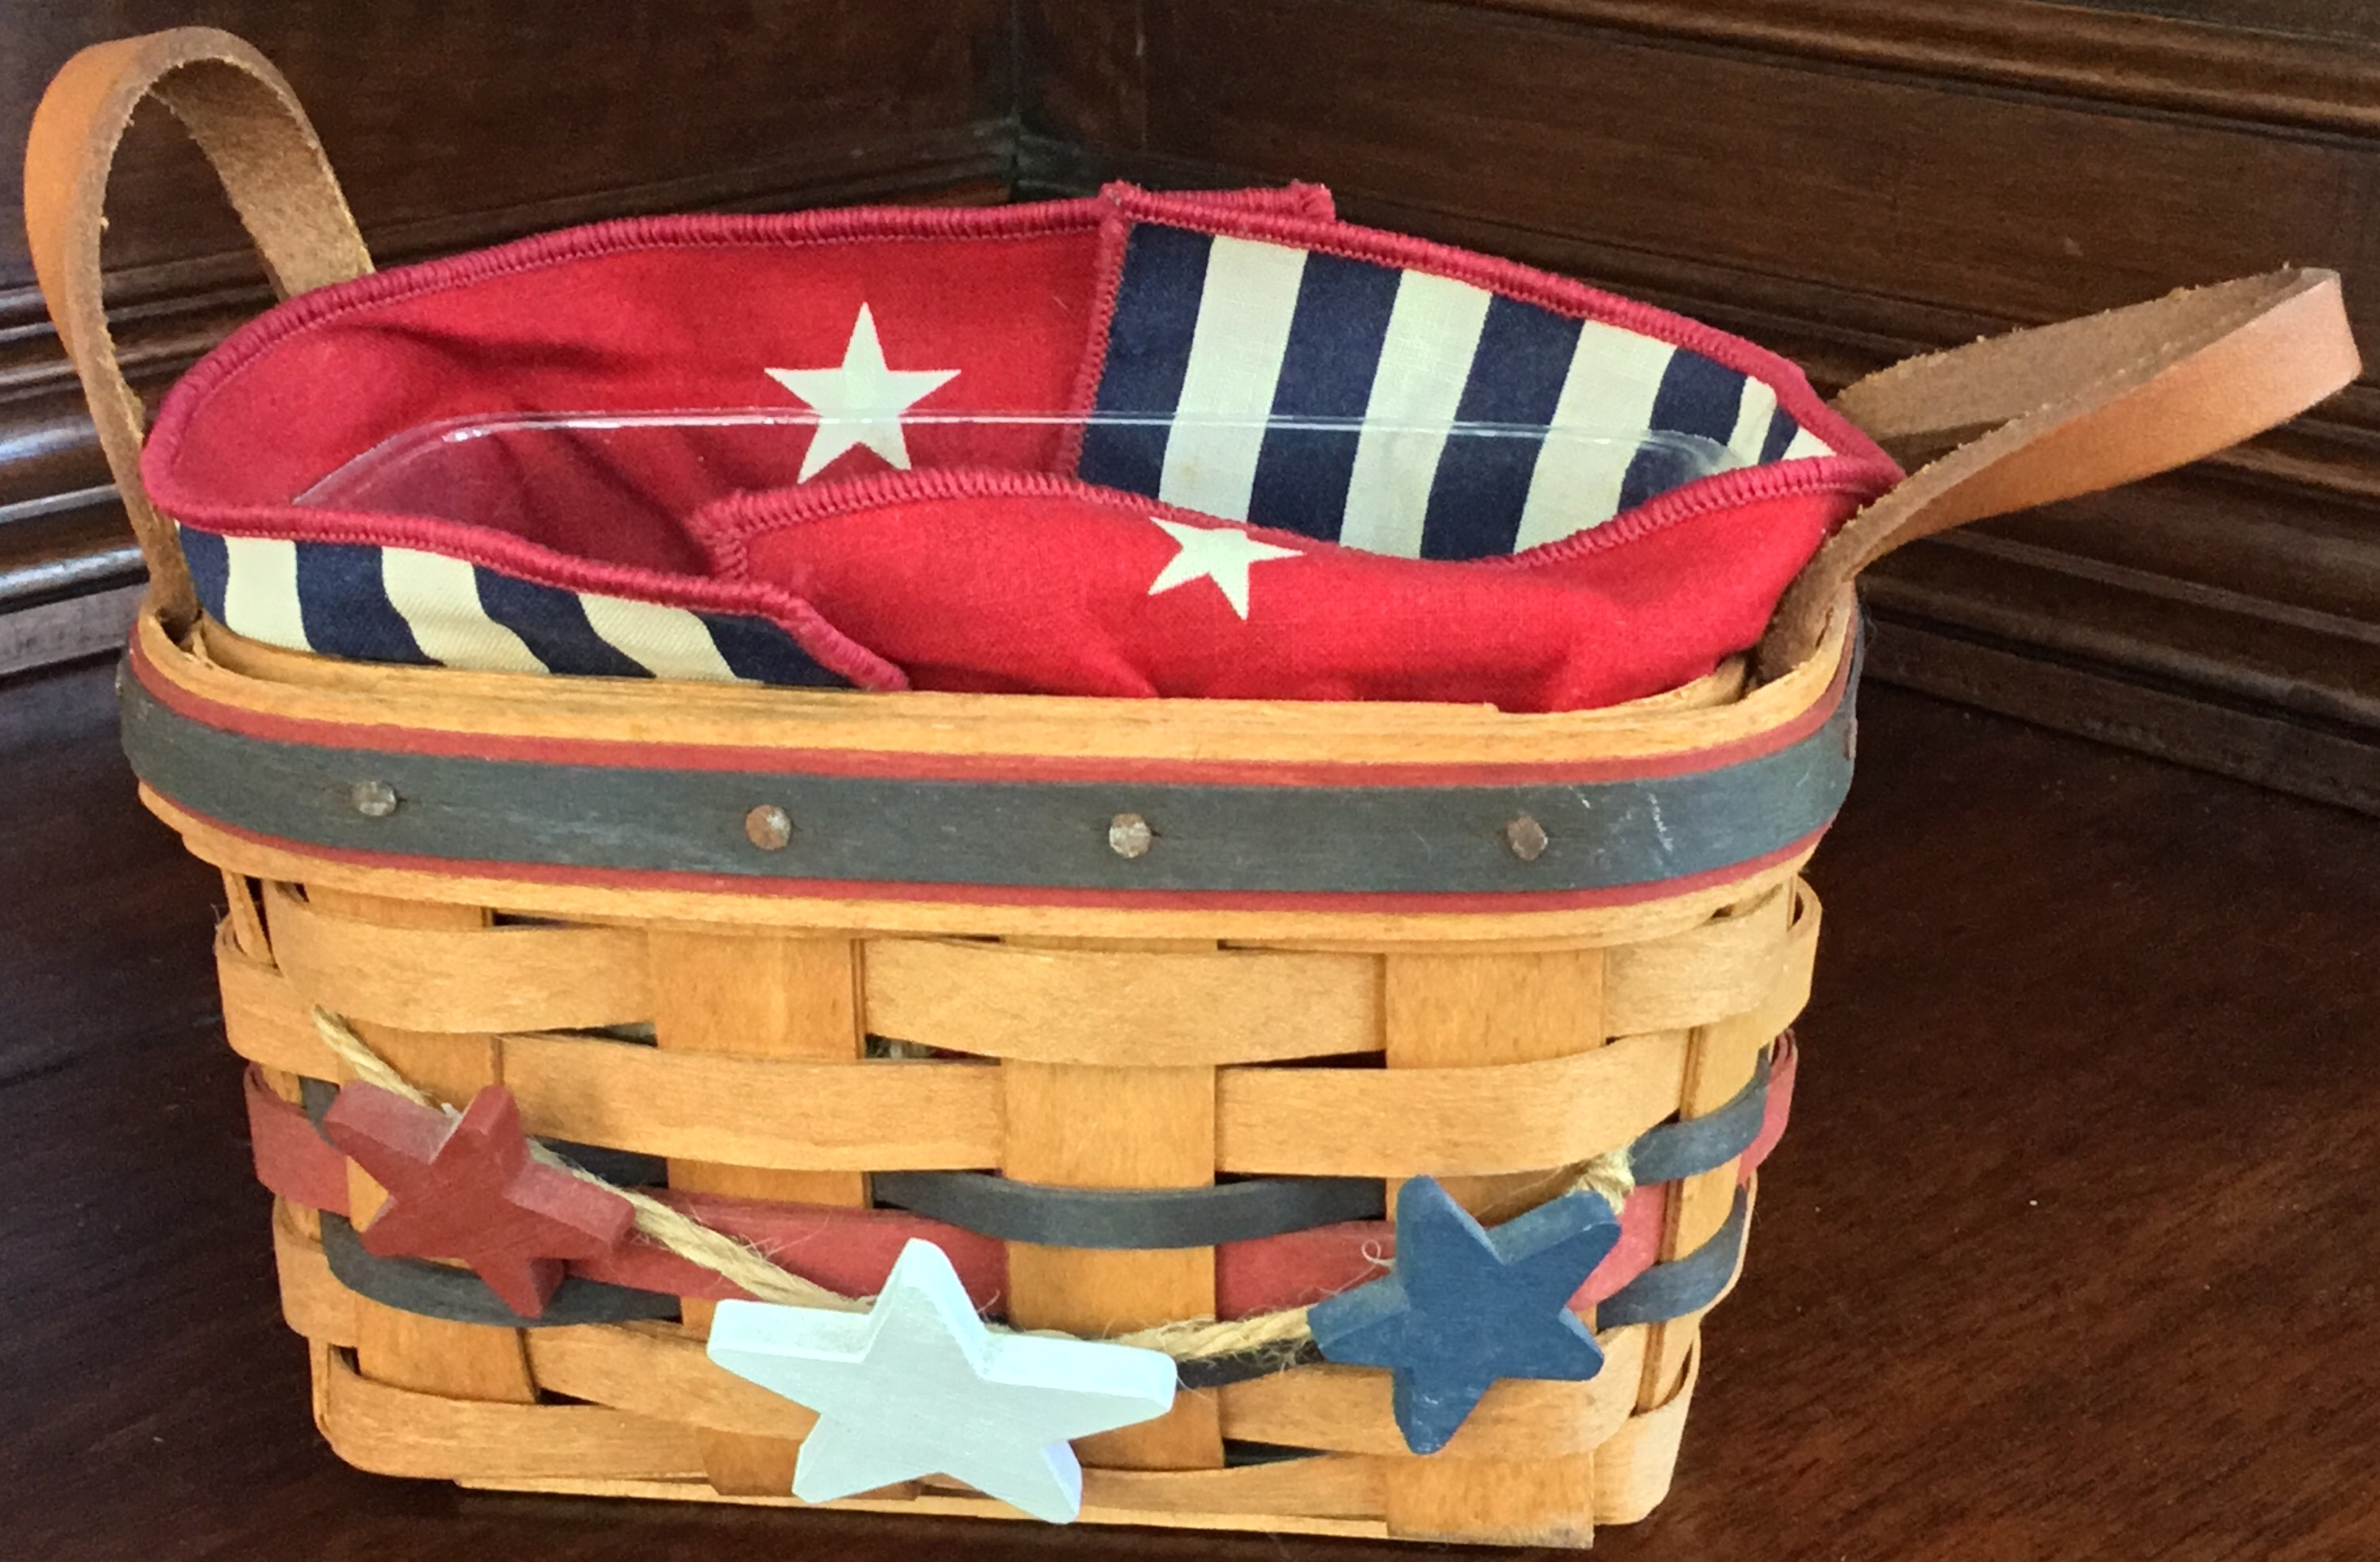 1993 Longaberger Basket with Stars